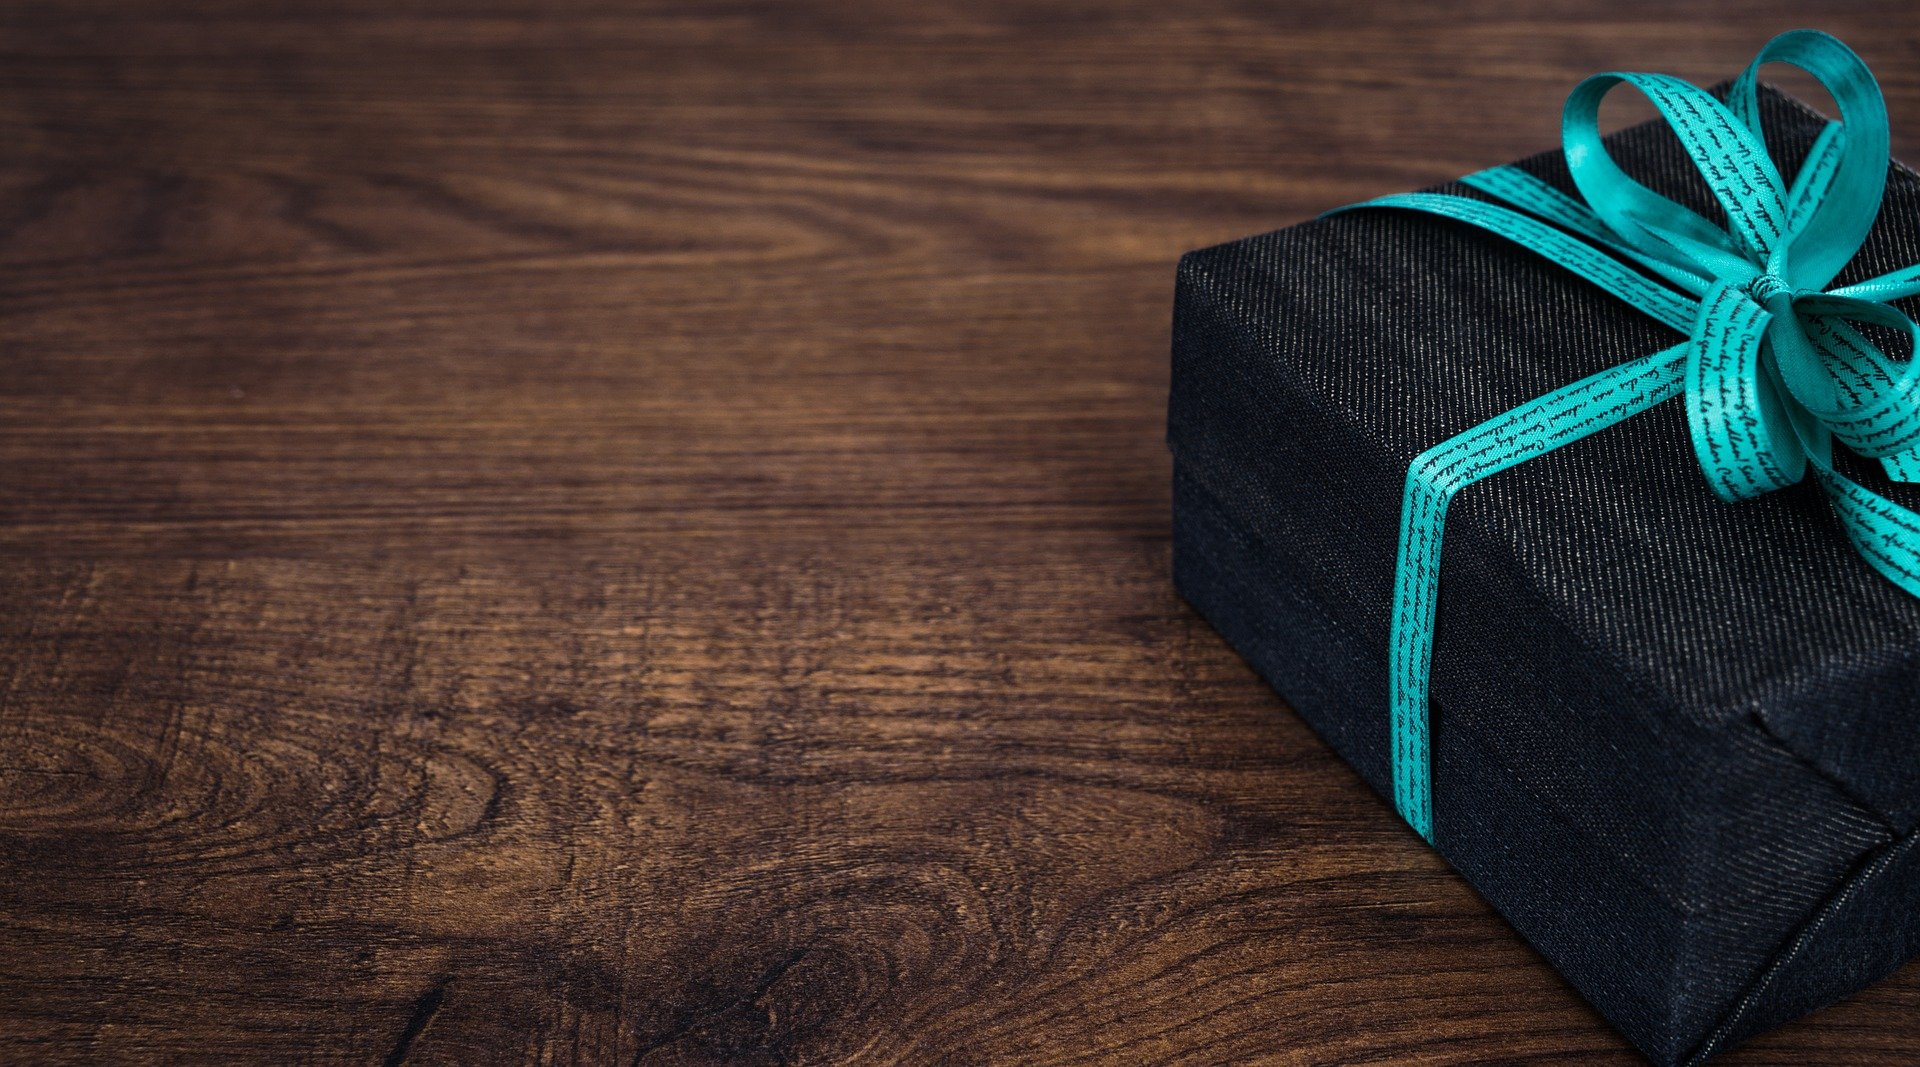 denim wrapped gift box with a teal ribbon